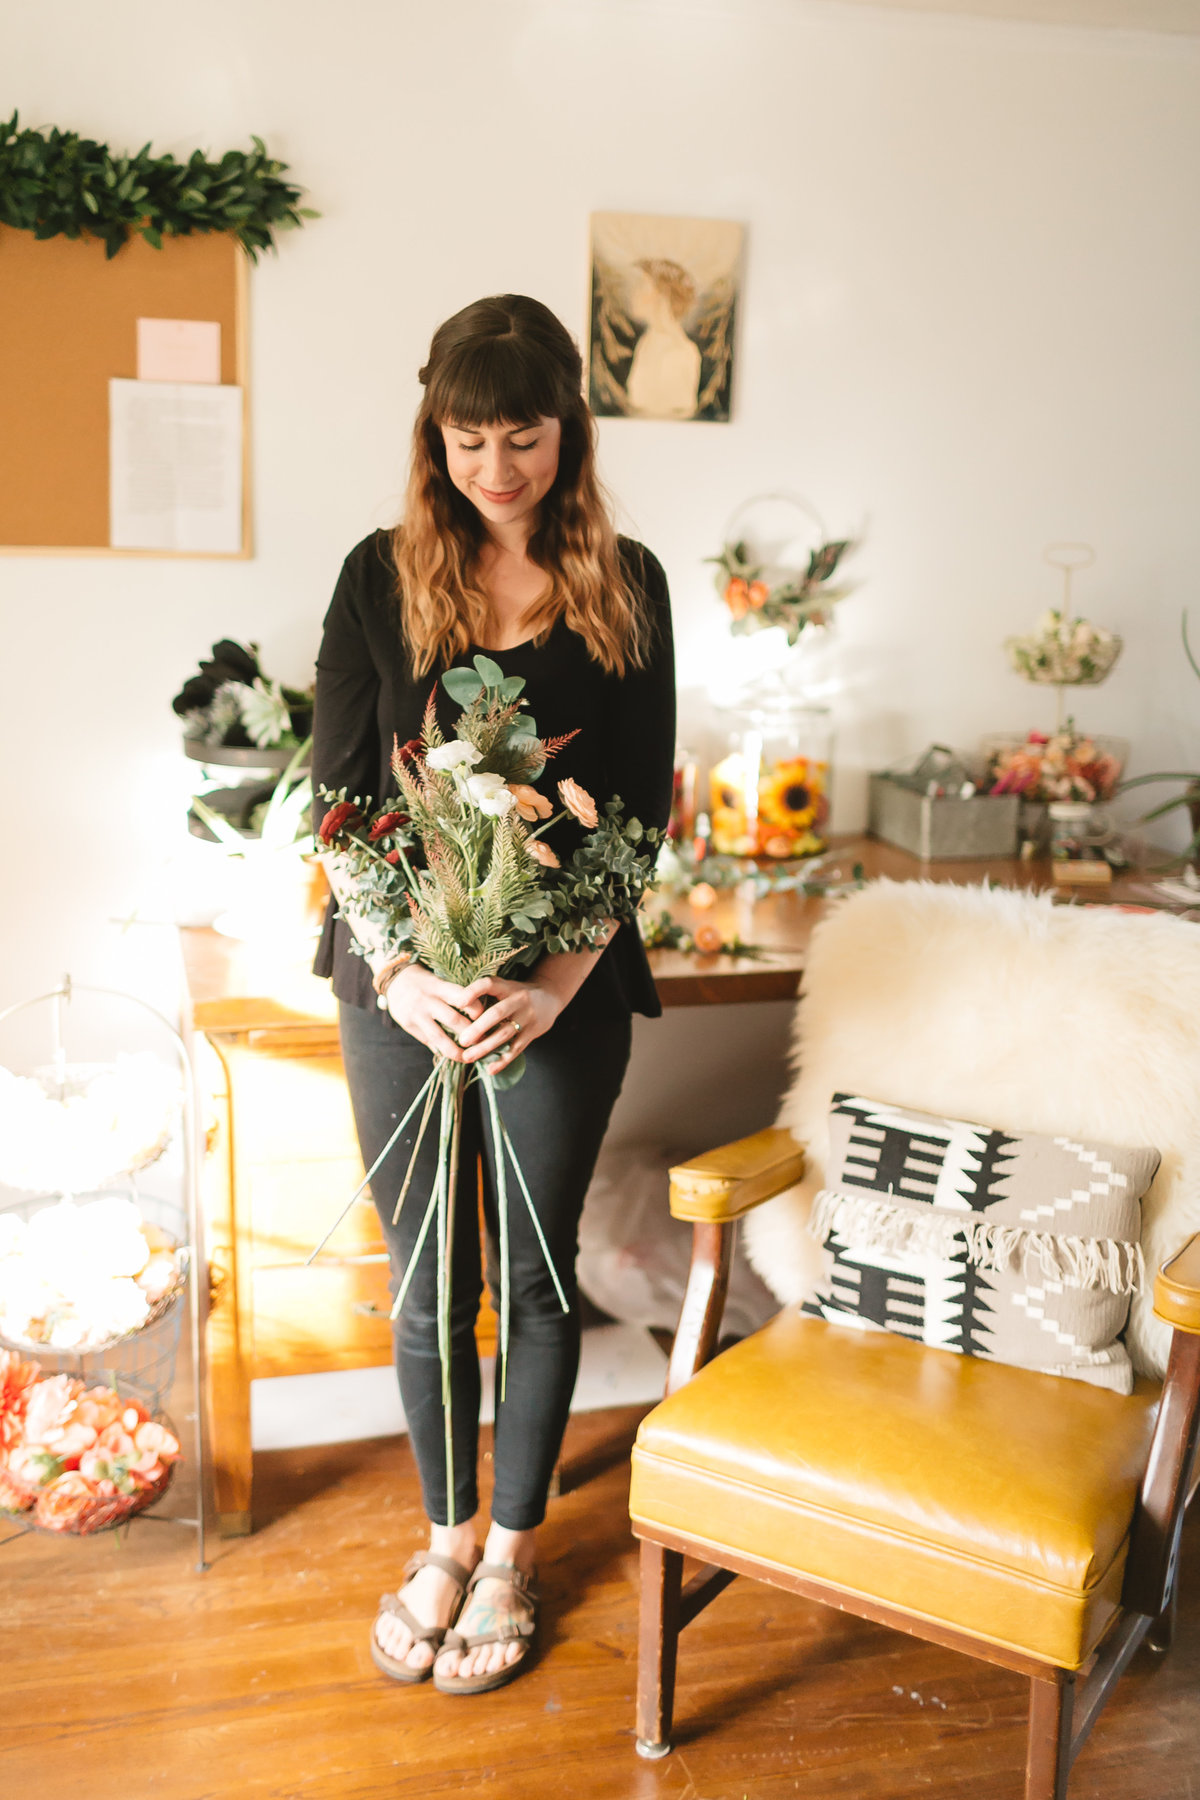 Danielle-Carder-Forage-Floral-Emily-Nicole-Photo-46